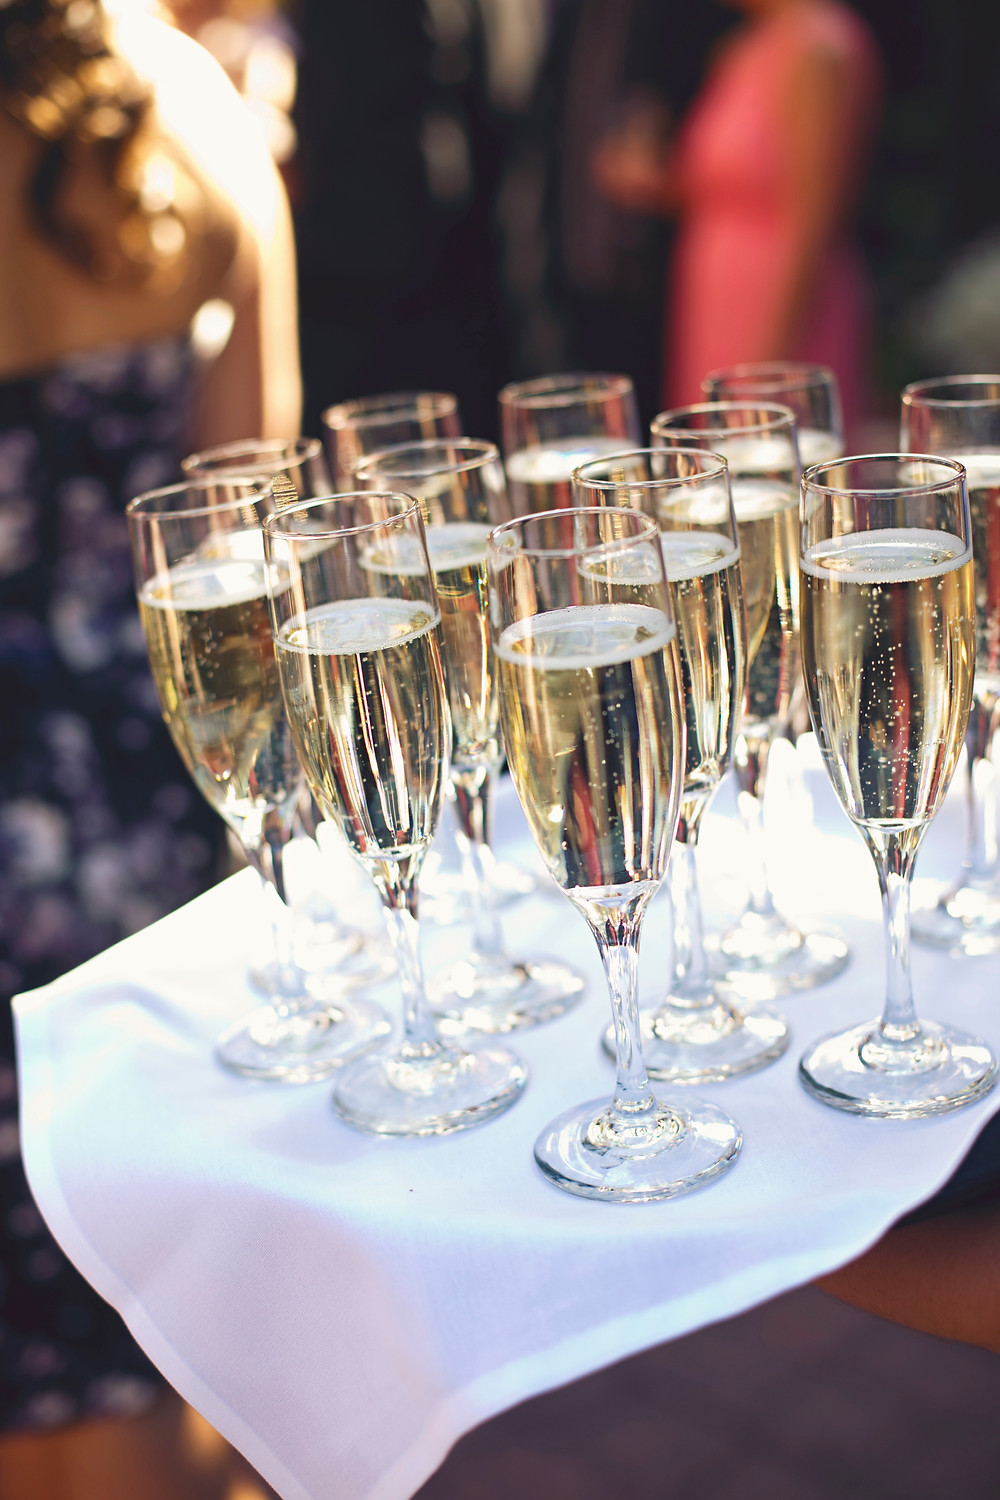 A tray of champagne flutes on a brown tray lined with a white cloth being passed out at a wedding.